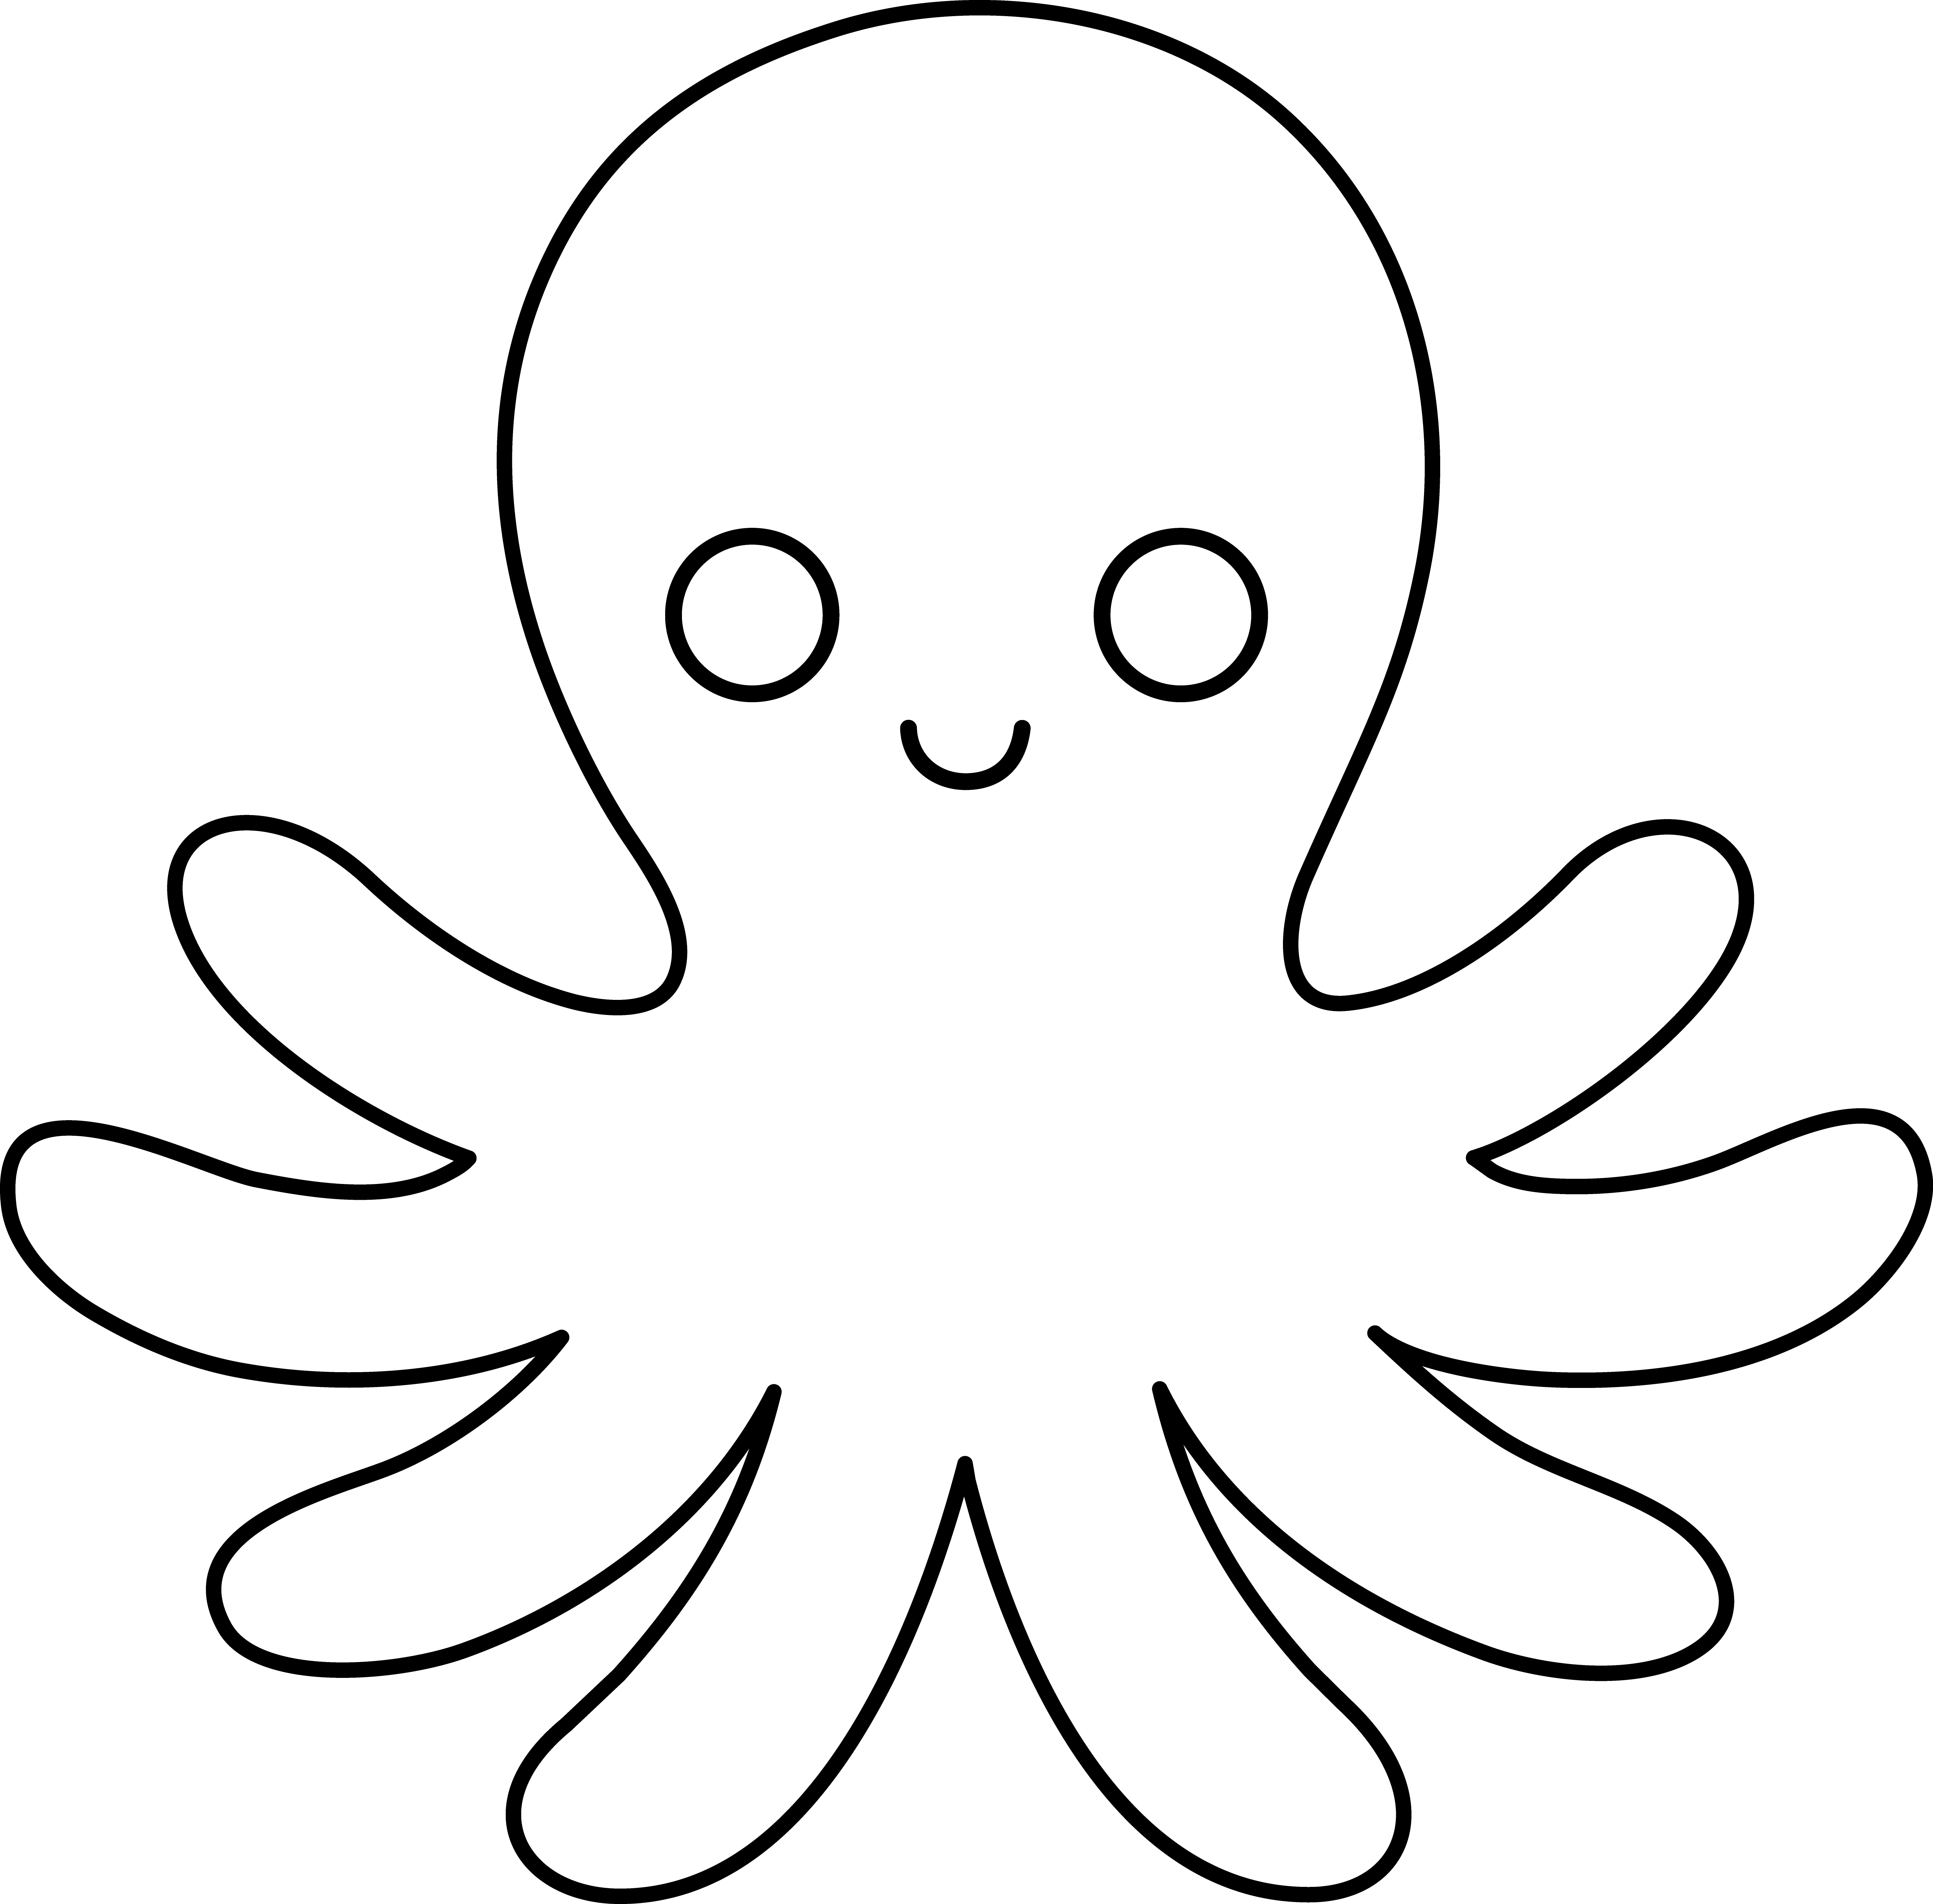 Octopus cliparts co washi. Clipart vegetables outline